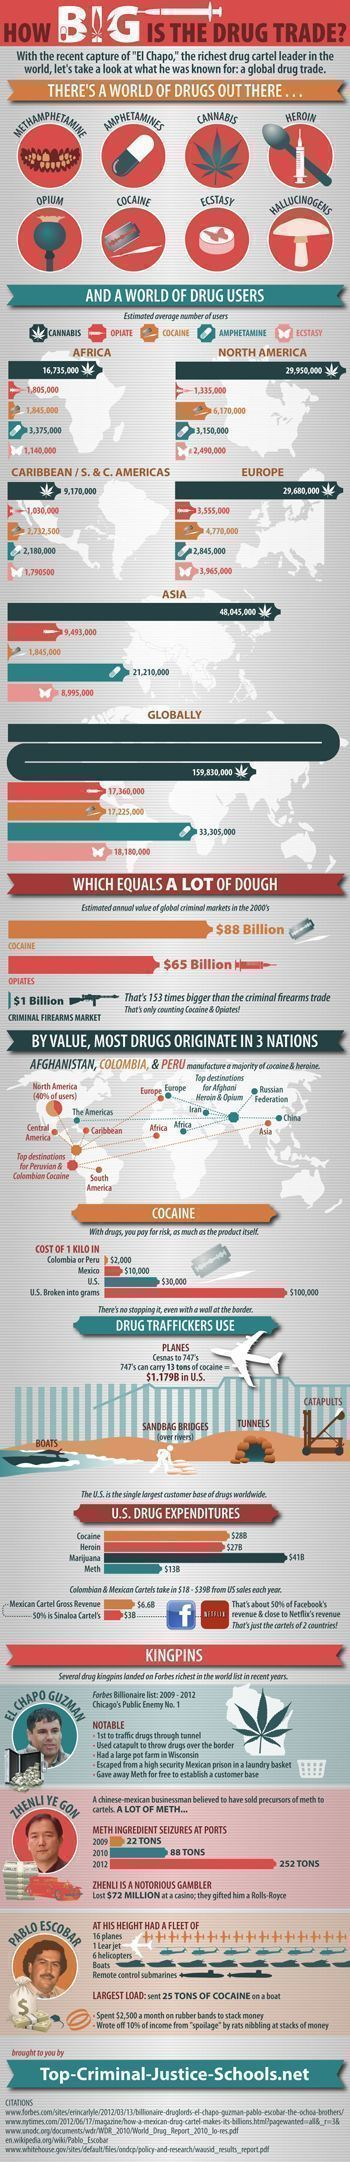 How Big Is The Drug Trade?